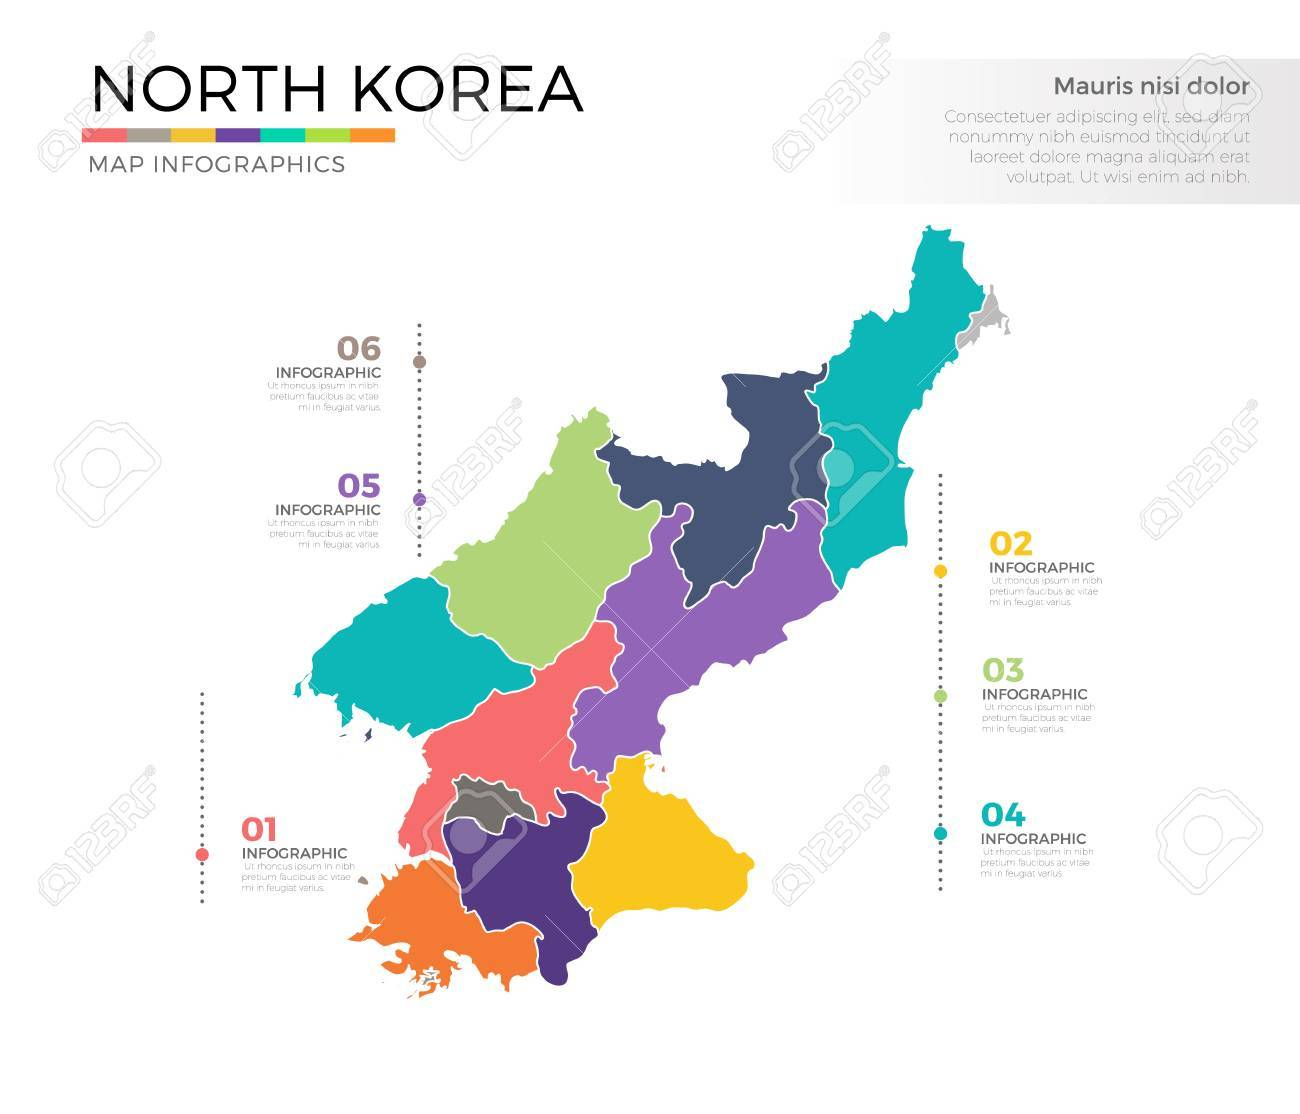 North Korea country map infographic colored vector template with.. on greenland country map, togo country map, apac country map, u.s. country map, kyrgyzstan country map, burkina faso country map, mid east country map, china country map, persian gulf country map, dominica country map, botswana country map, middle america country map, ww1 country map, bahamas country map, worldwide country map, korean culture country map, turkmenistan country map, uzbekistan country map, turkestan country map, pyongyang country map,